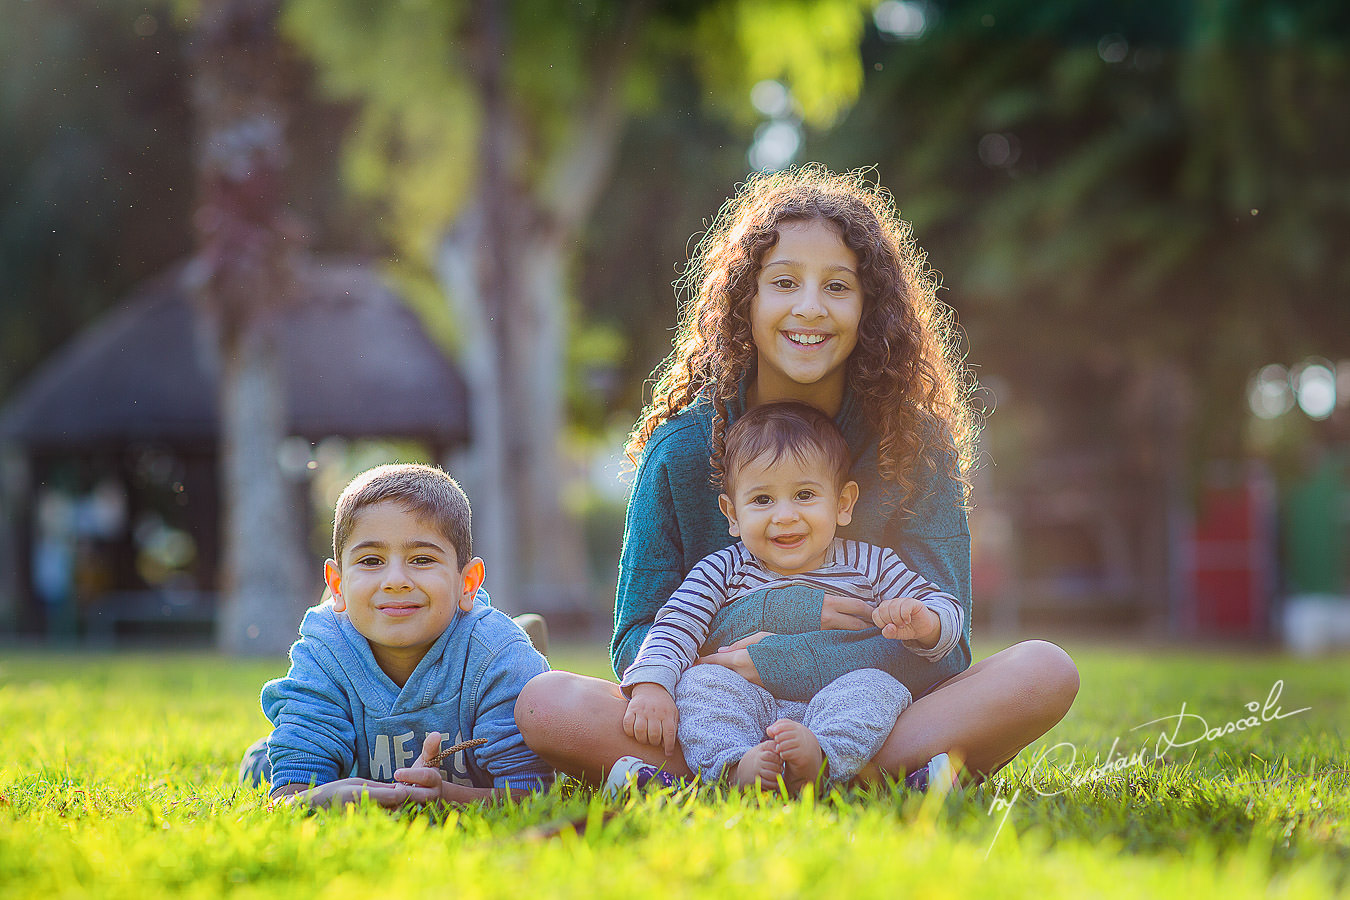 Brothers and sister in the park, moments captured by Cristian Dascalu during a beautiful Limassol family photography photo session.